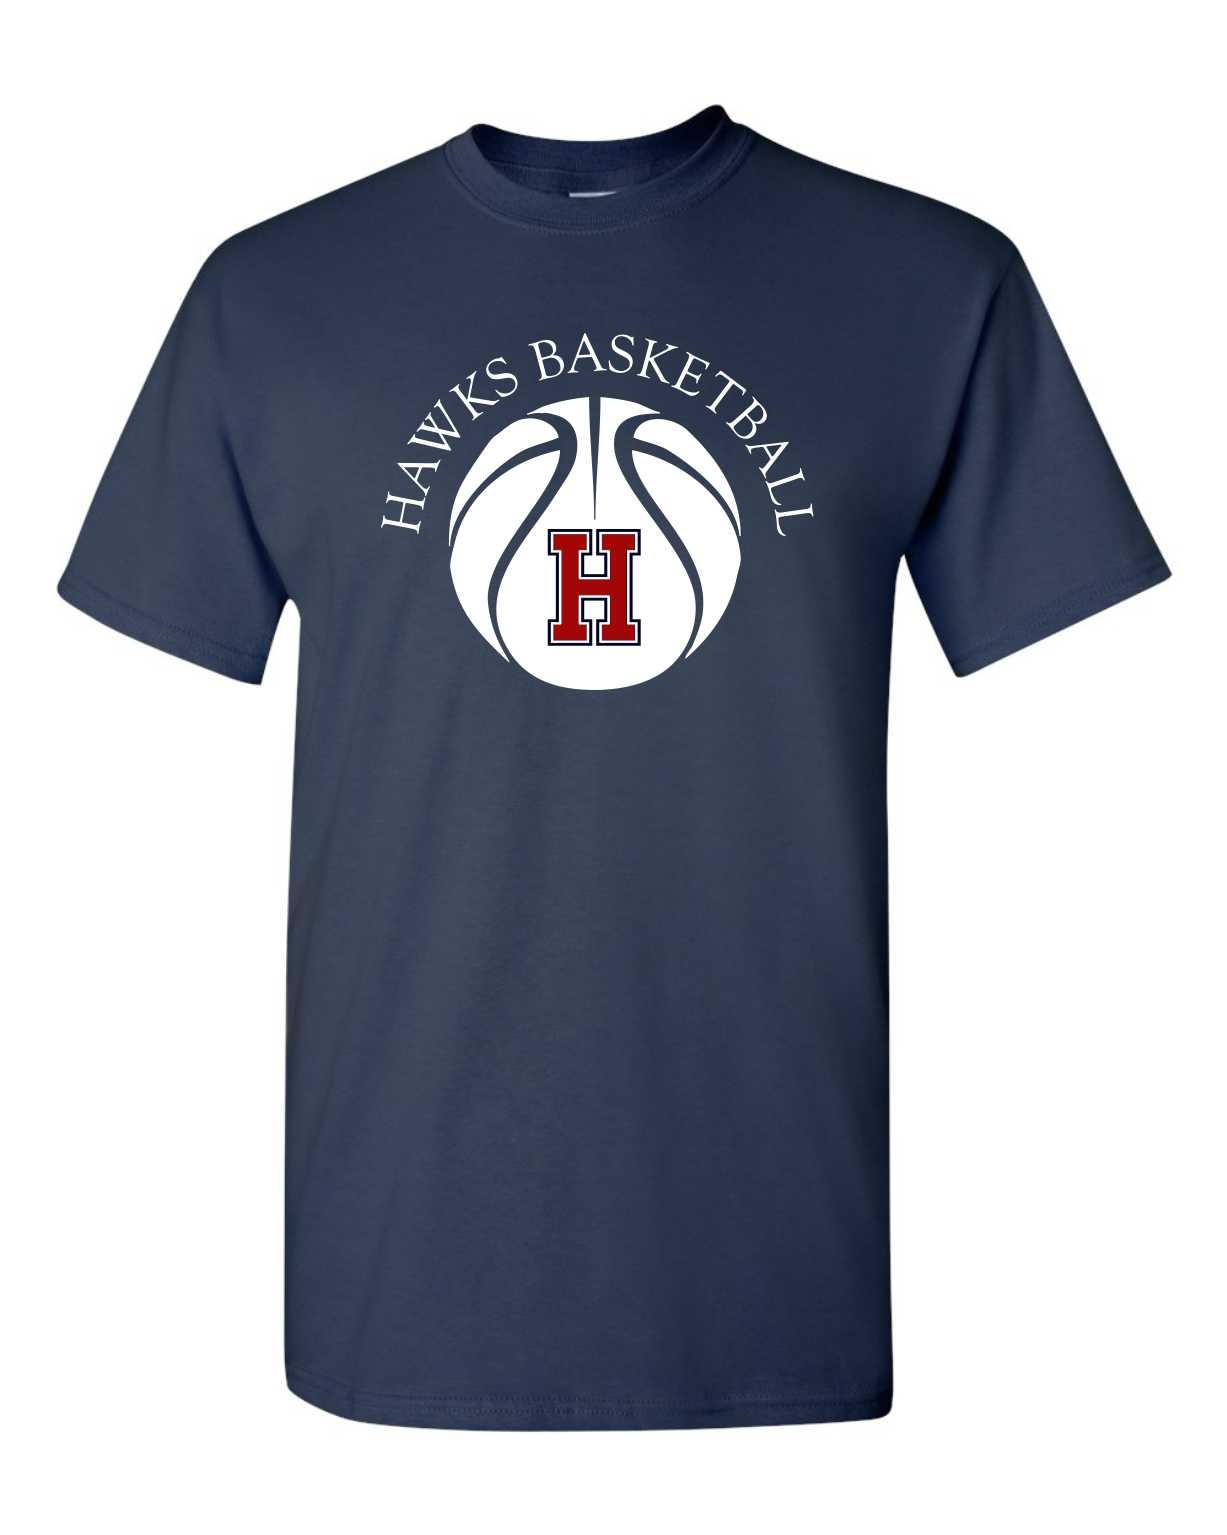 Image of H Basketball Tee